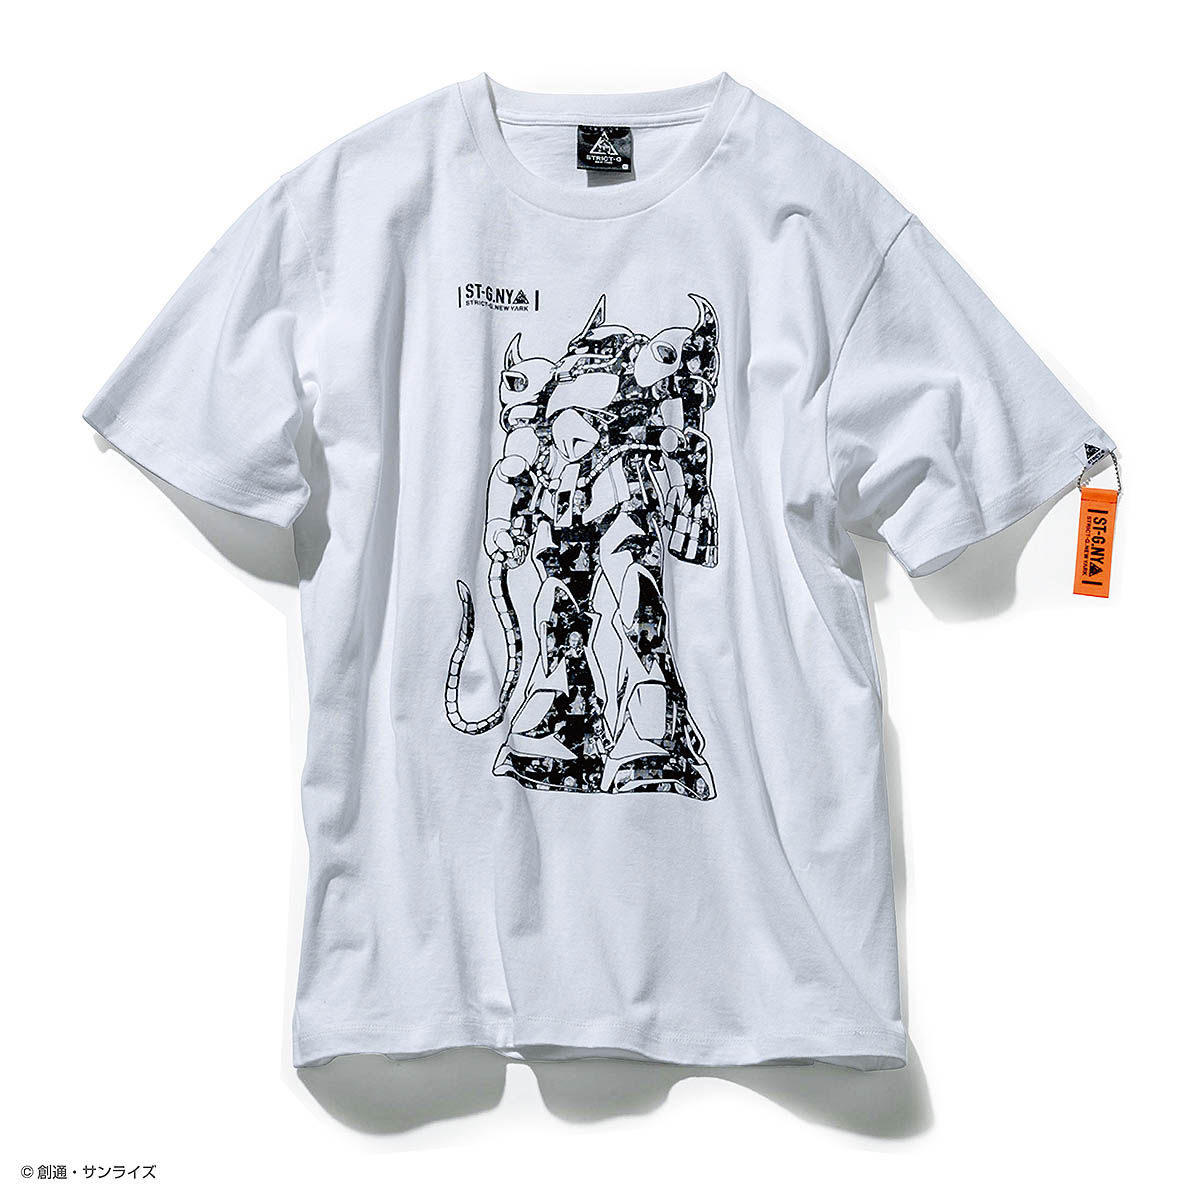 STRICT-G NEW YARK GOUF COLLAGE T-SHIRT